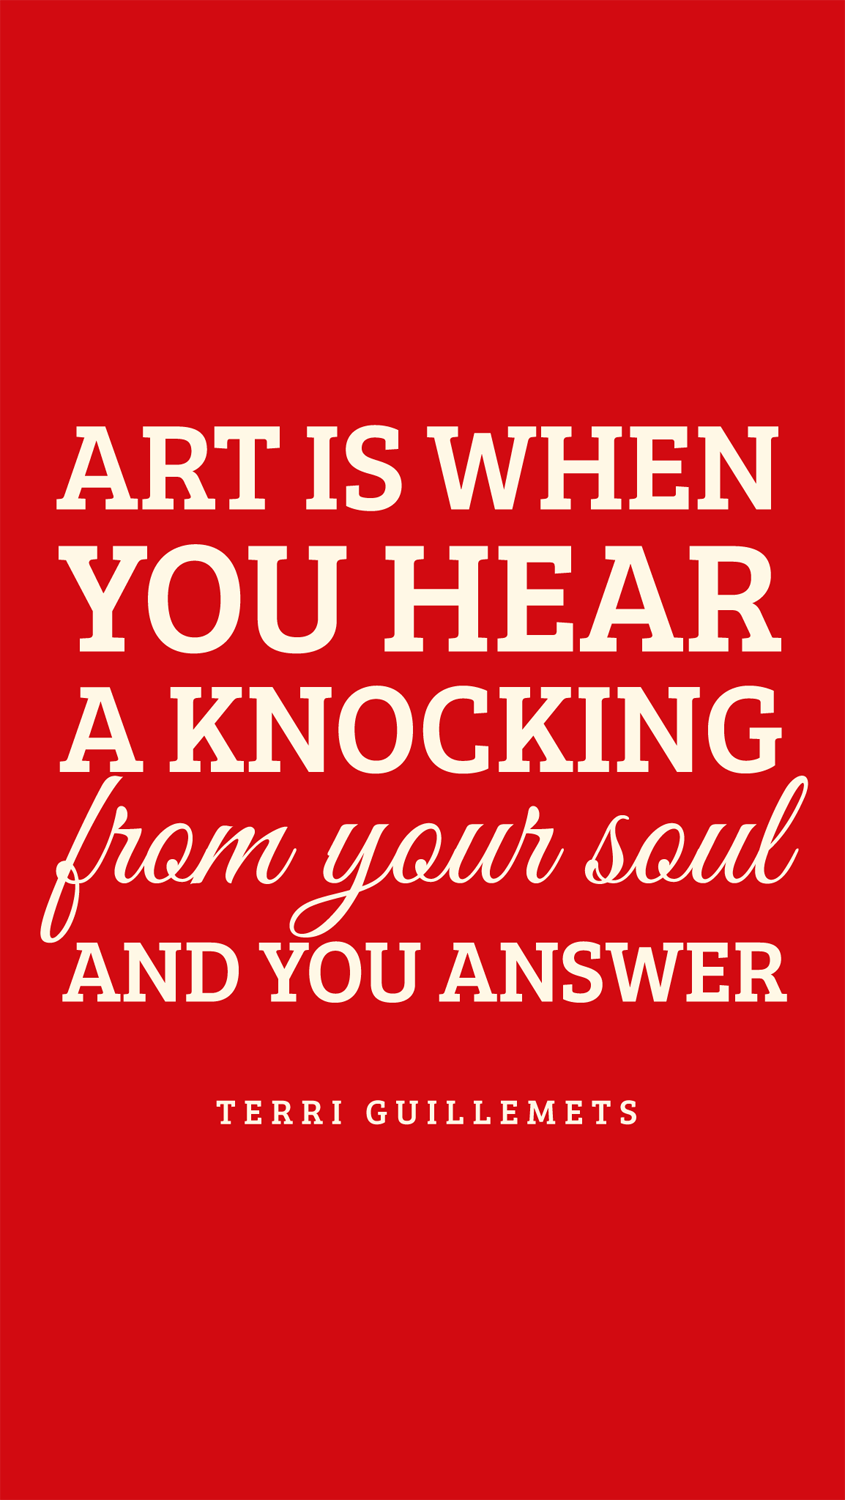 Art is when you hear a knocking from your soul — and you answer.